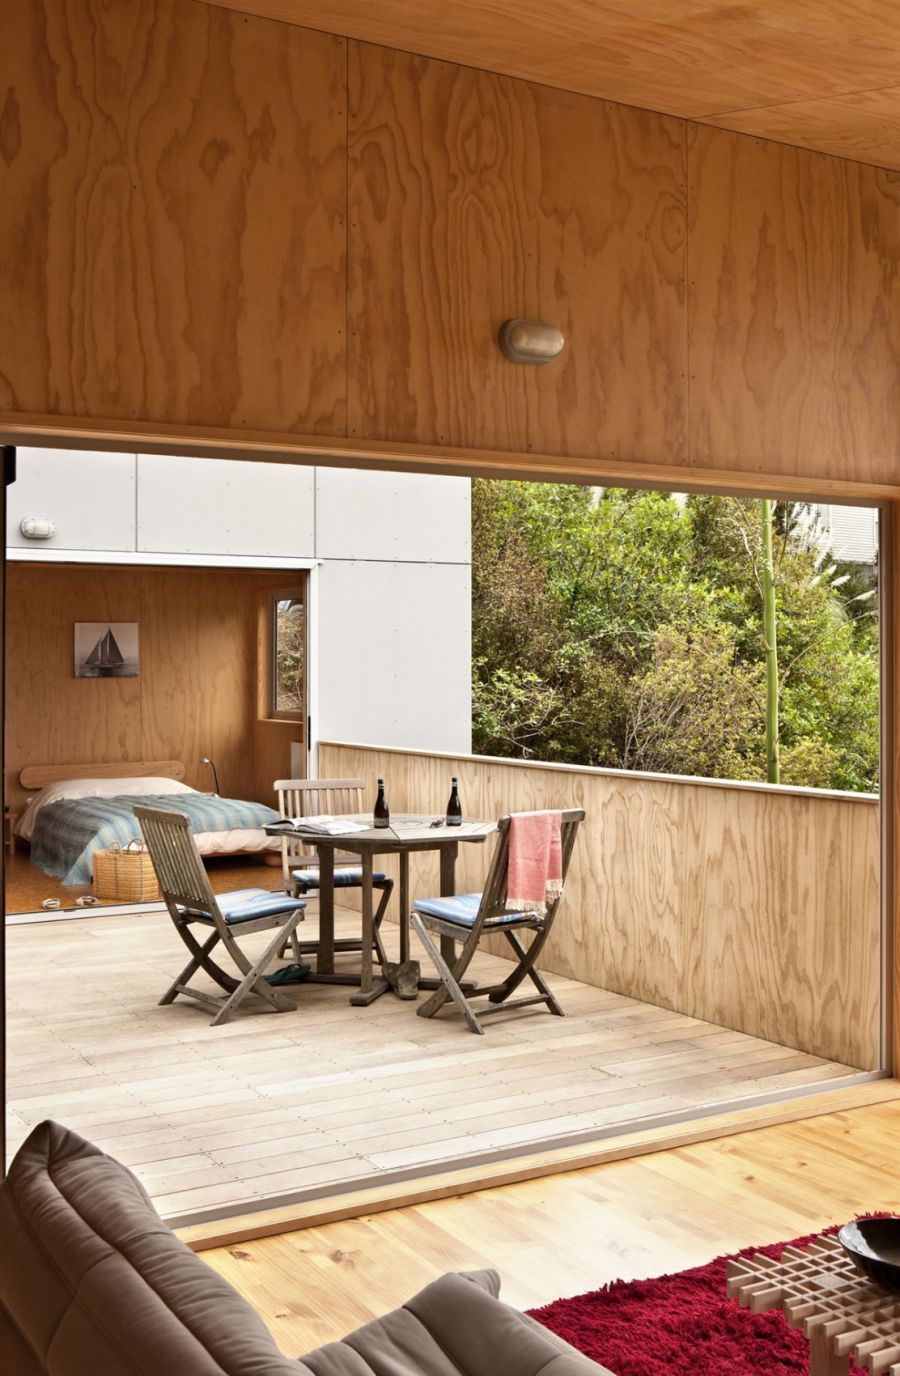 Warm wooden surfaces inside the New Zealand home